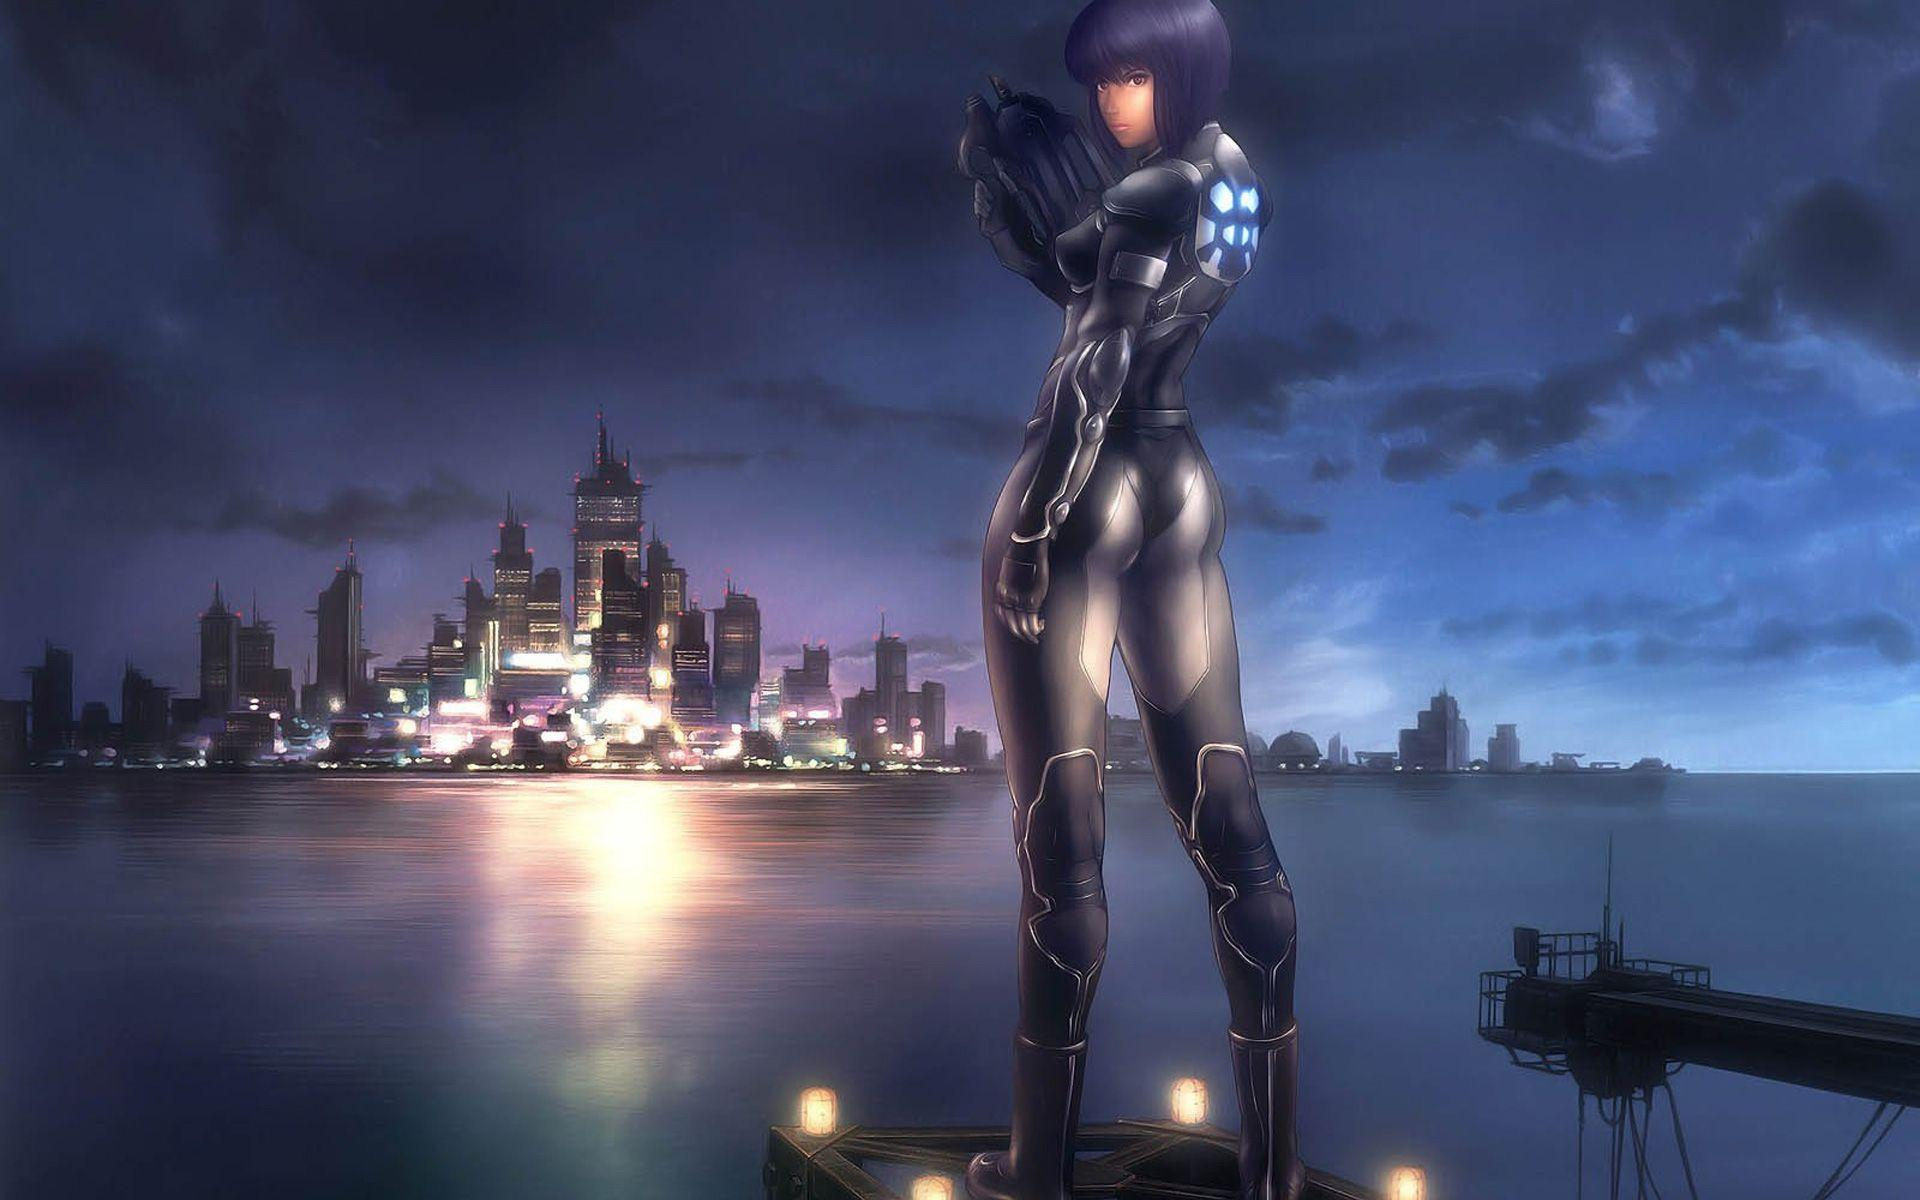 Wallpapers Anime, Girl, Costume, Character, Weapons, Night, City